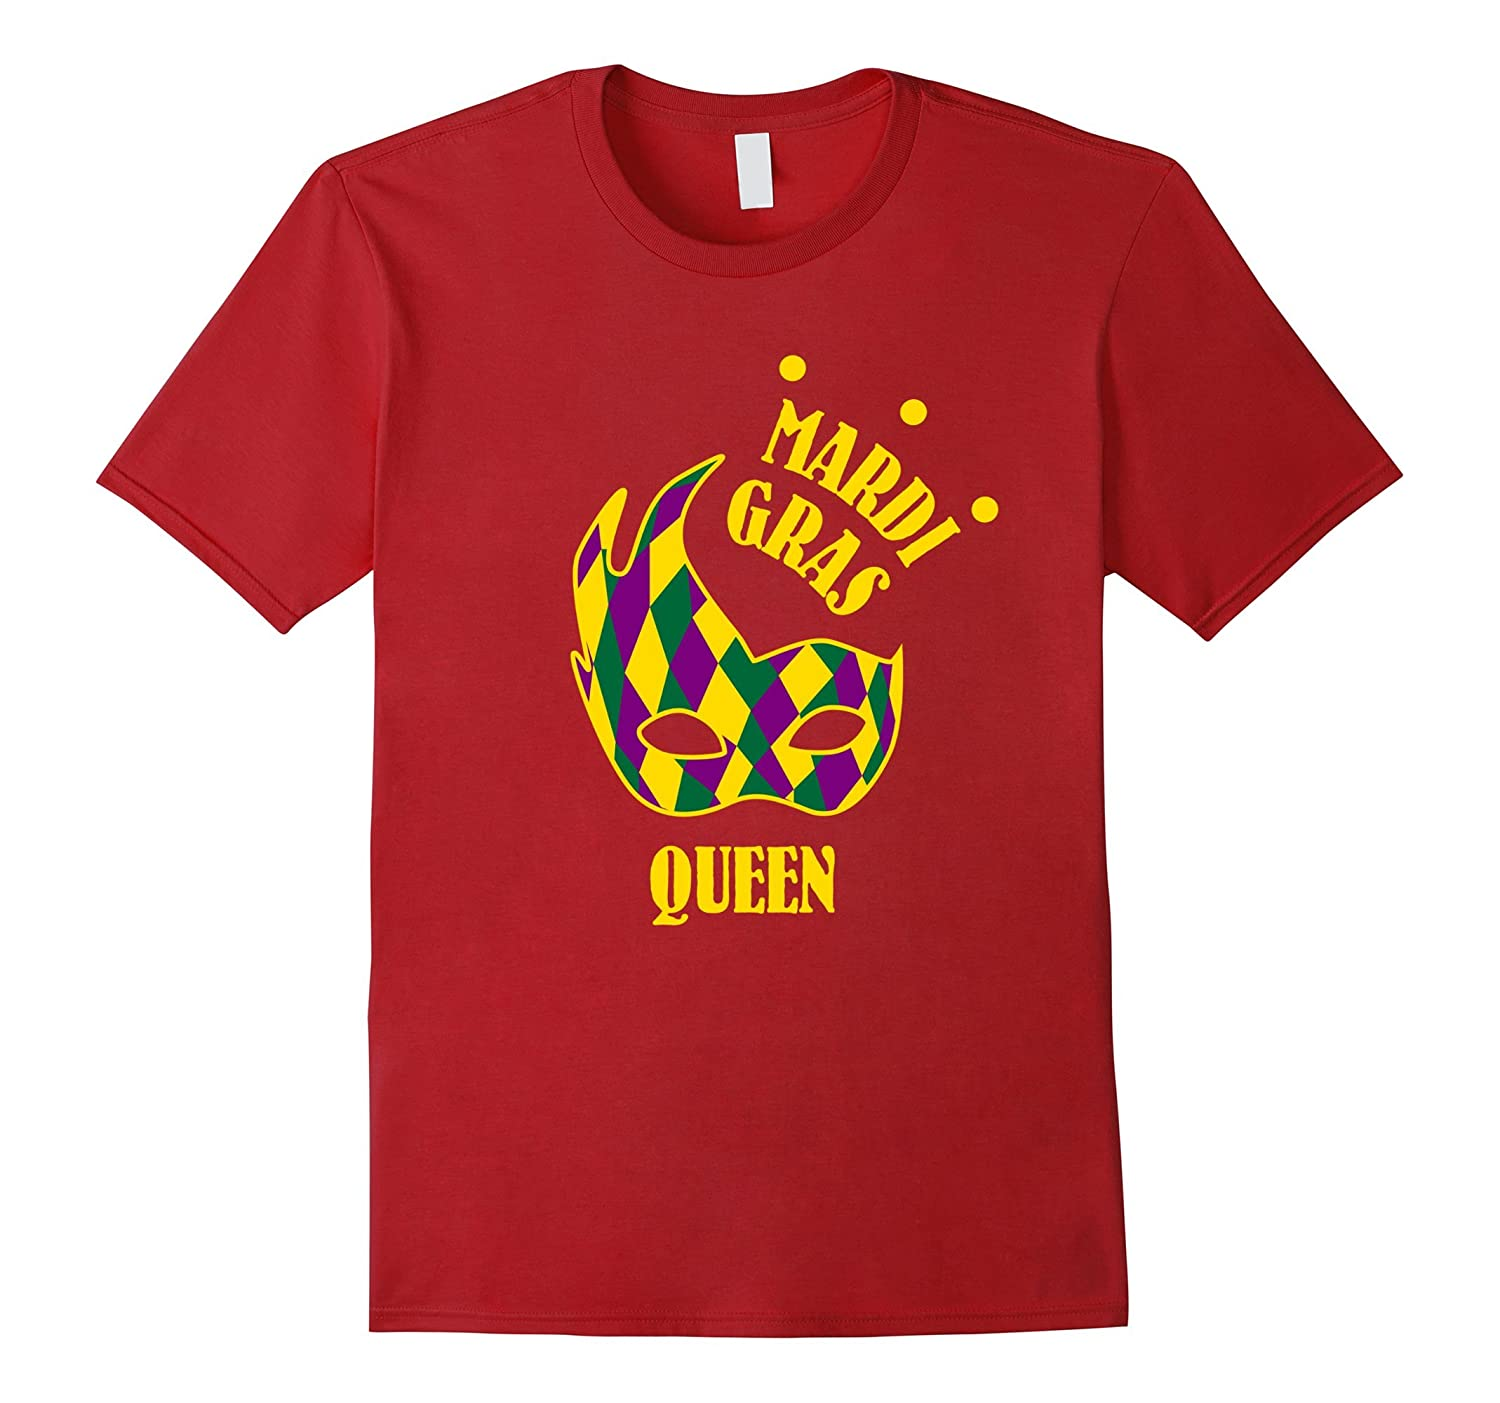 Mardi Gras Queen Shirt Funny Mask Celebration Party Gift-TD